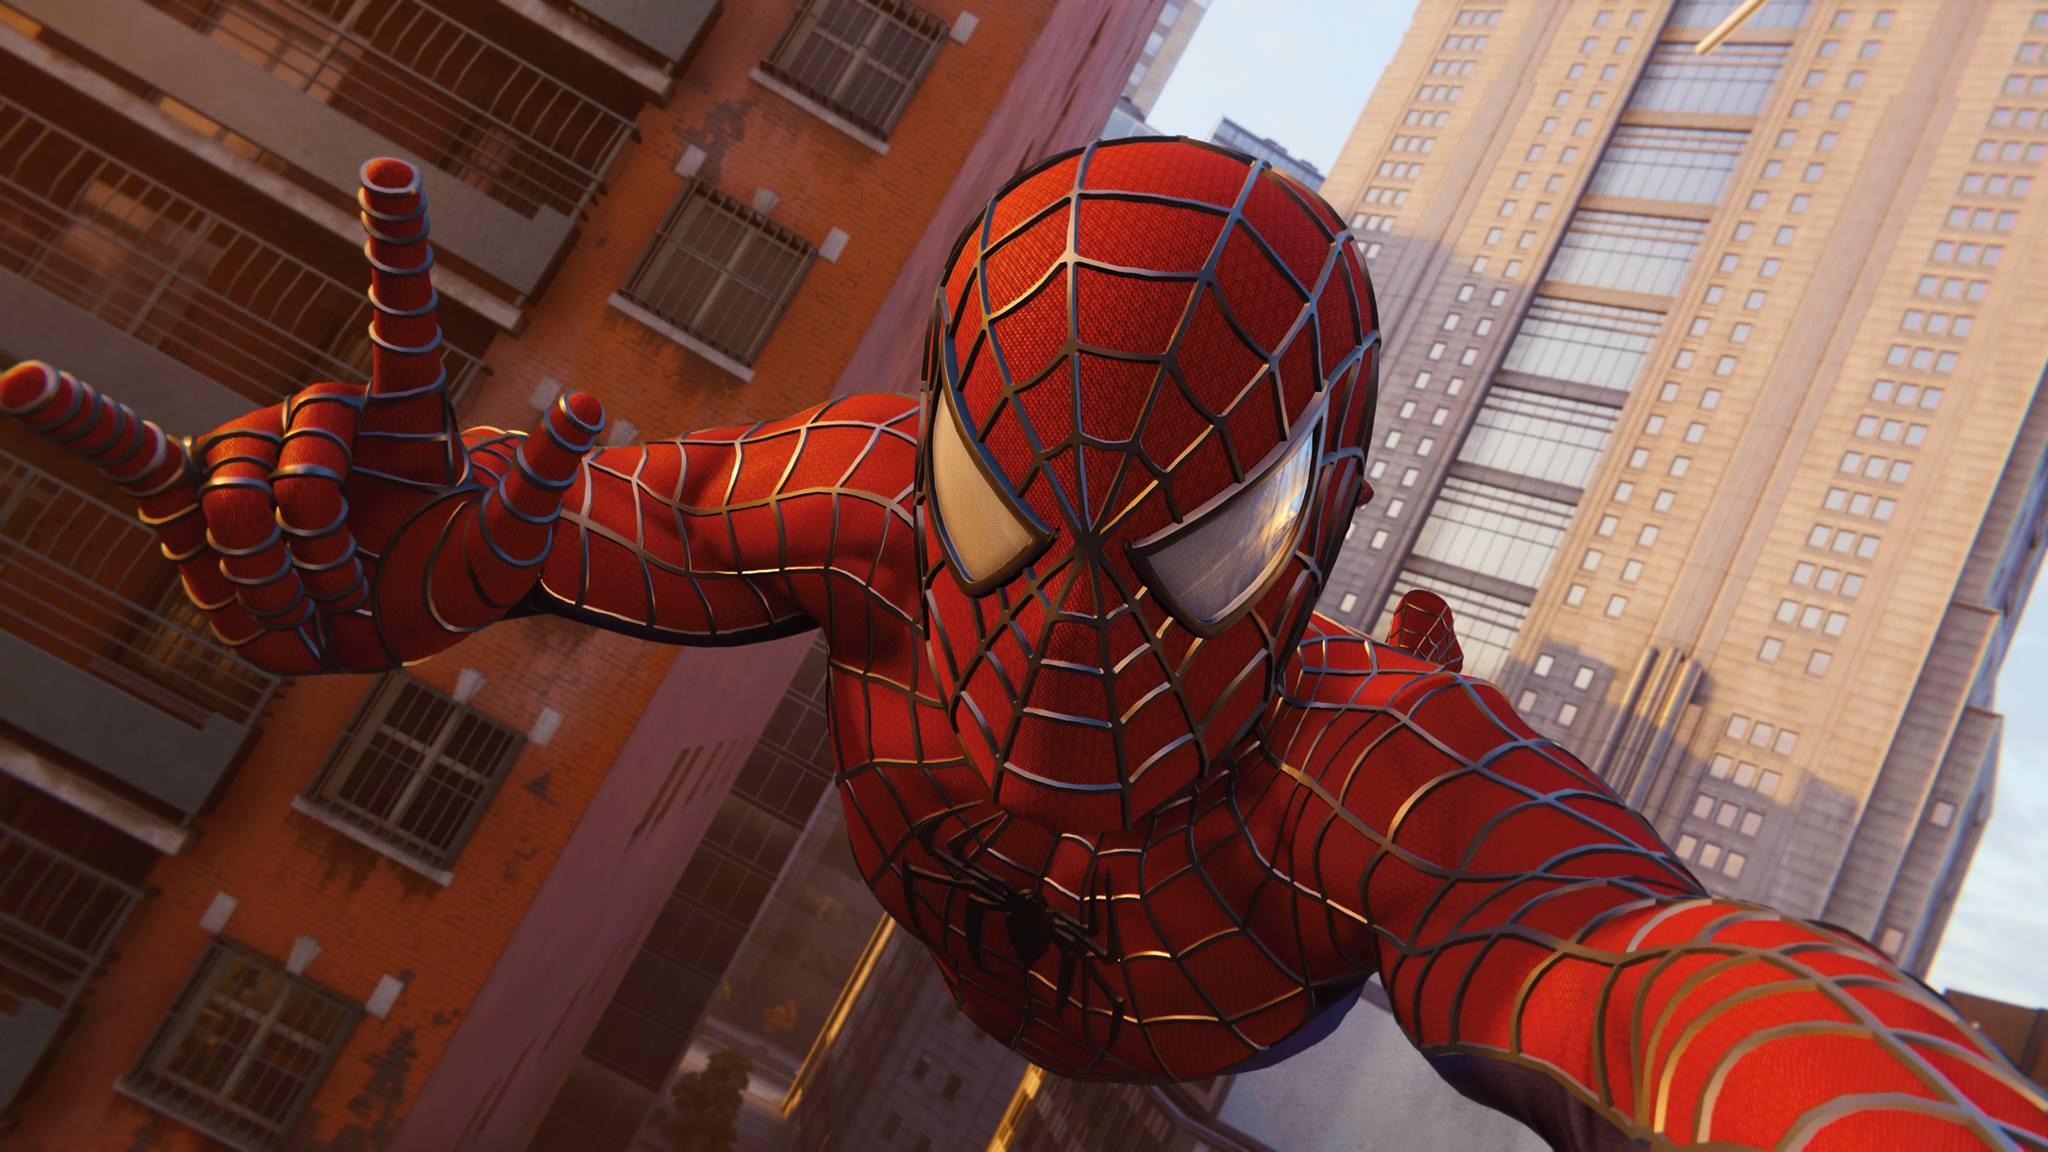 Spider Man PS4 Fans Are Having a Blast with the New Sam